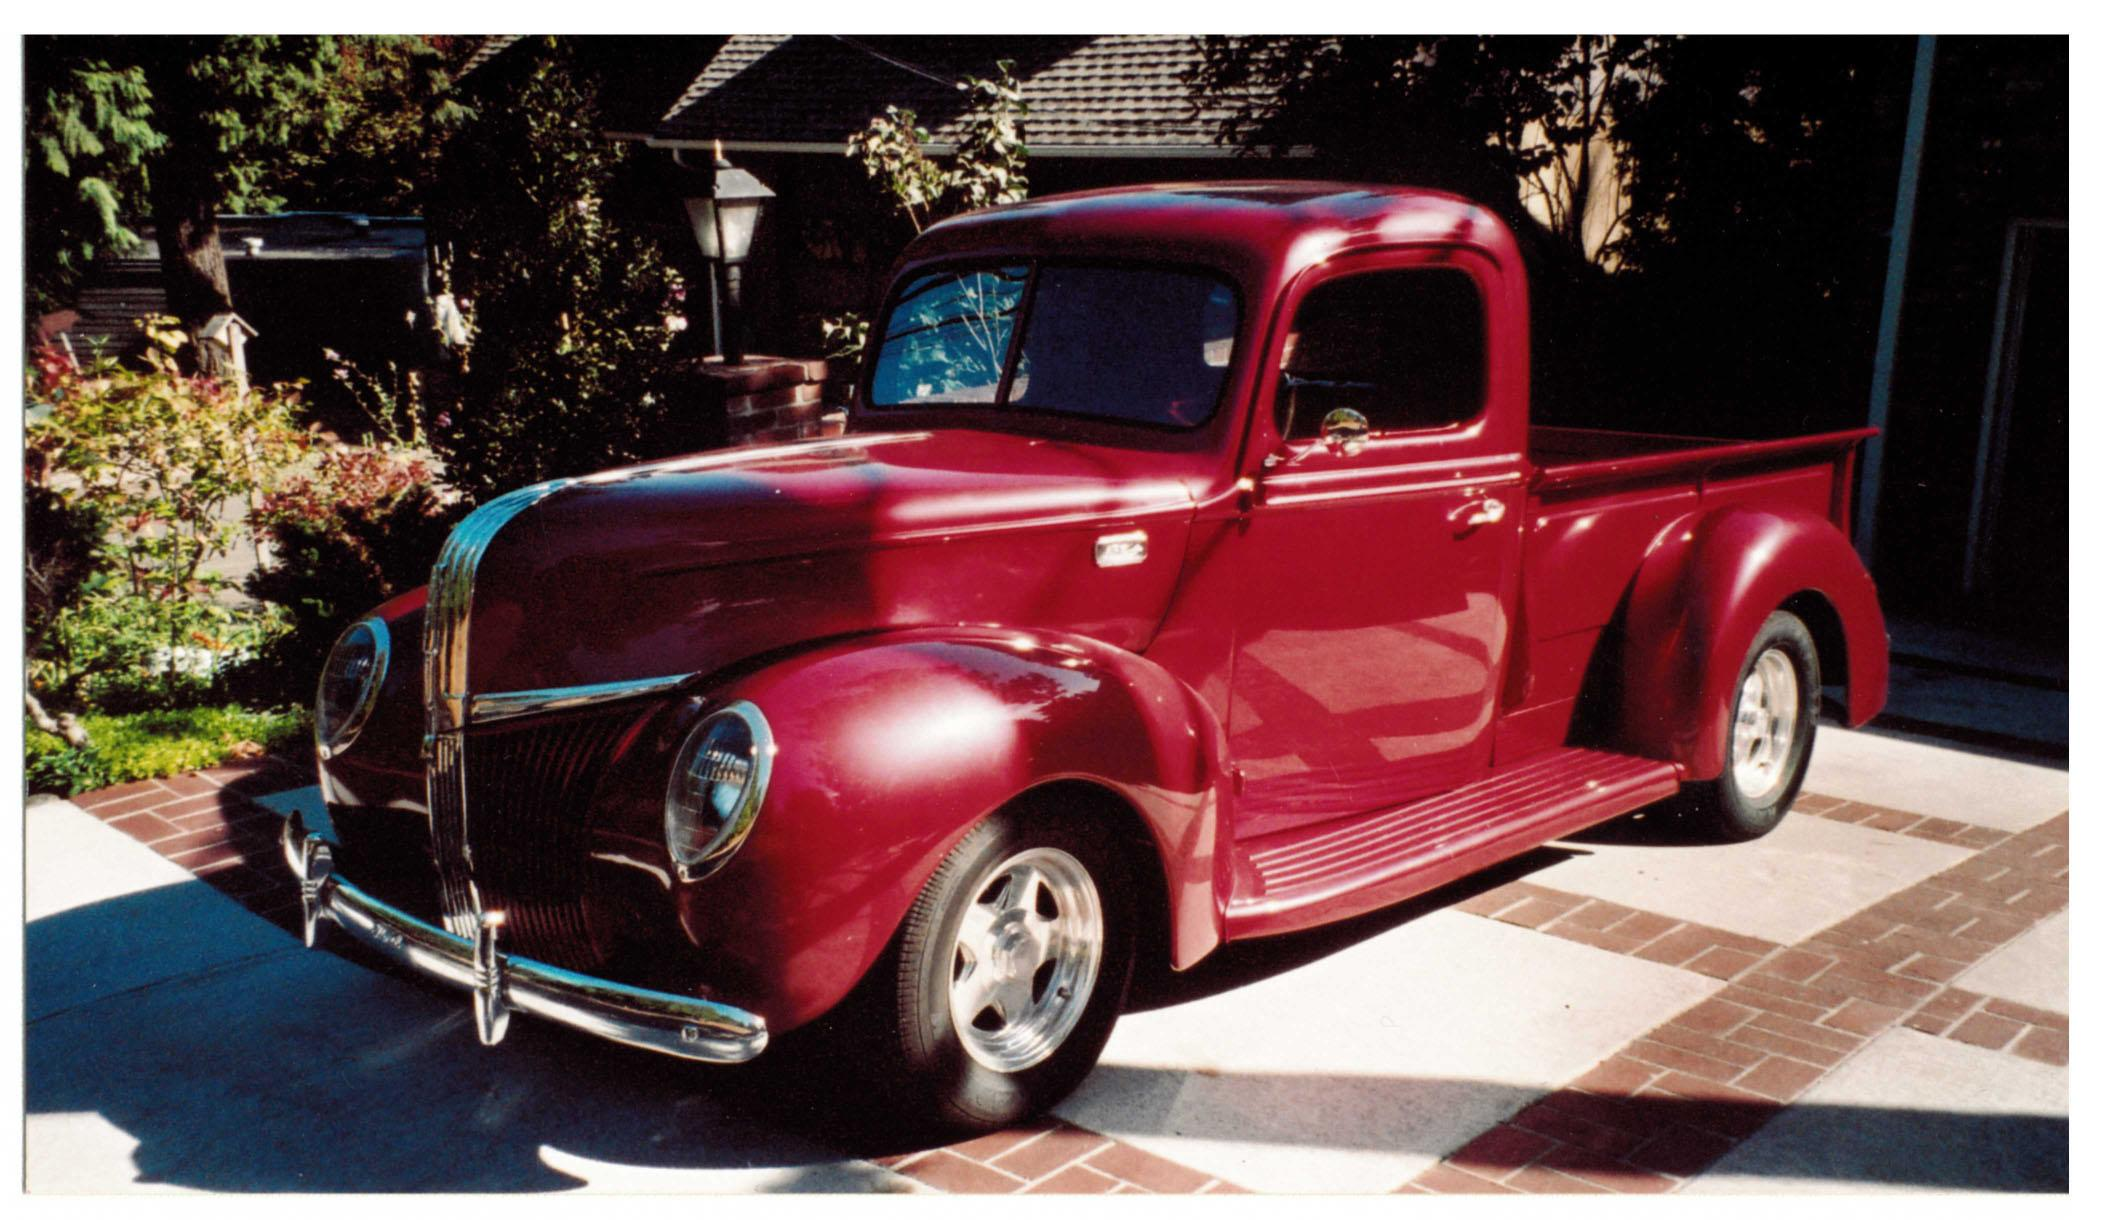 New box truck heartwood manufacturing - We Get A Lot Of Questions About The Old Truck In The Showroom This Is A 1941 Ford Pickup Truck That Was Built By Bob Buck Brian S Grandfather